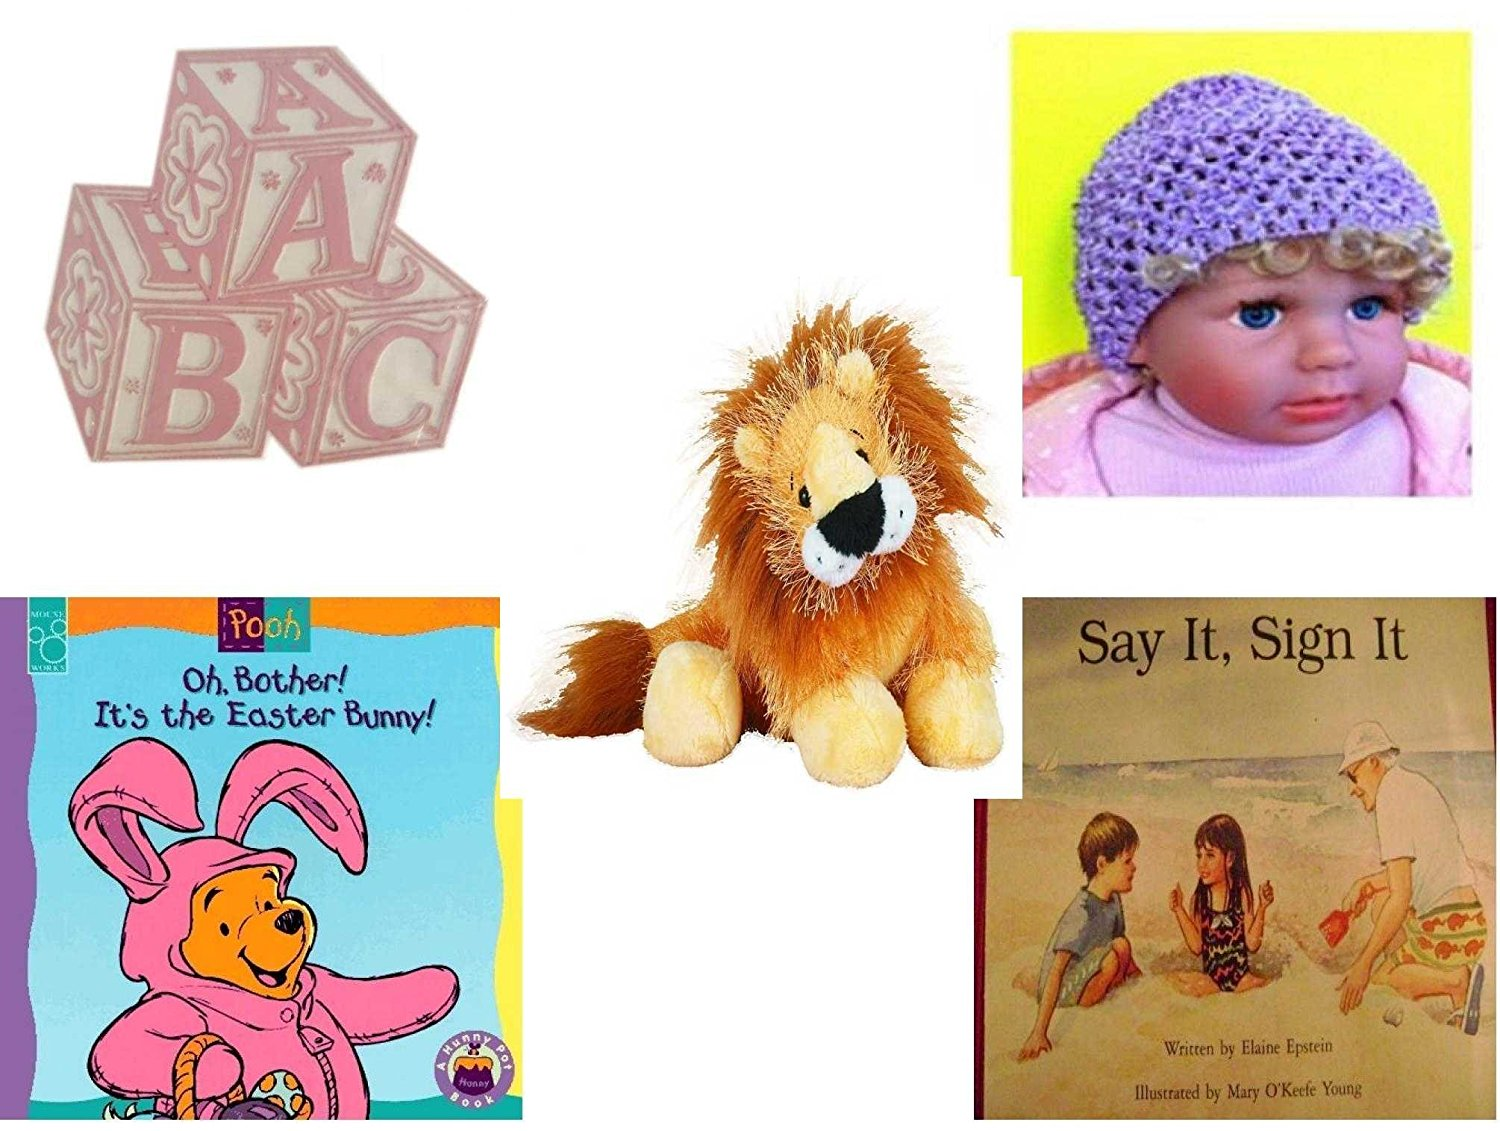 """Children's Gift Bundle - Ages 0-2 [5 Piece] - ABC Baby Blocks Cake Topper Pink Girl - Baby Crochet Beanie Lavender - Webkinz Lion 5"""" - Oh, Bother. It's the Easter Bunny. Board book - Say It, Sign I"""